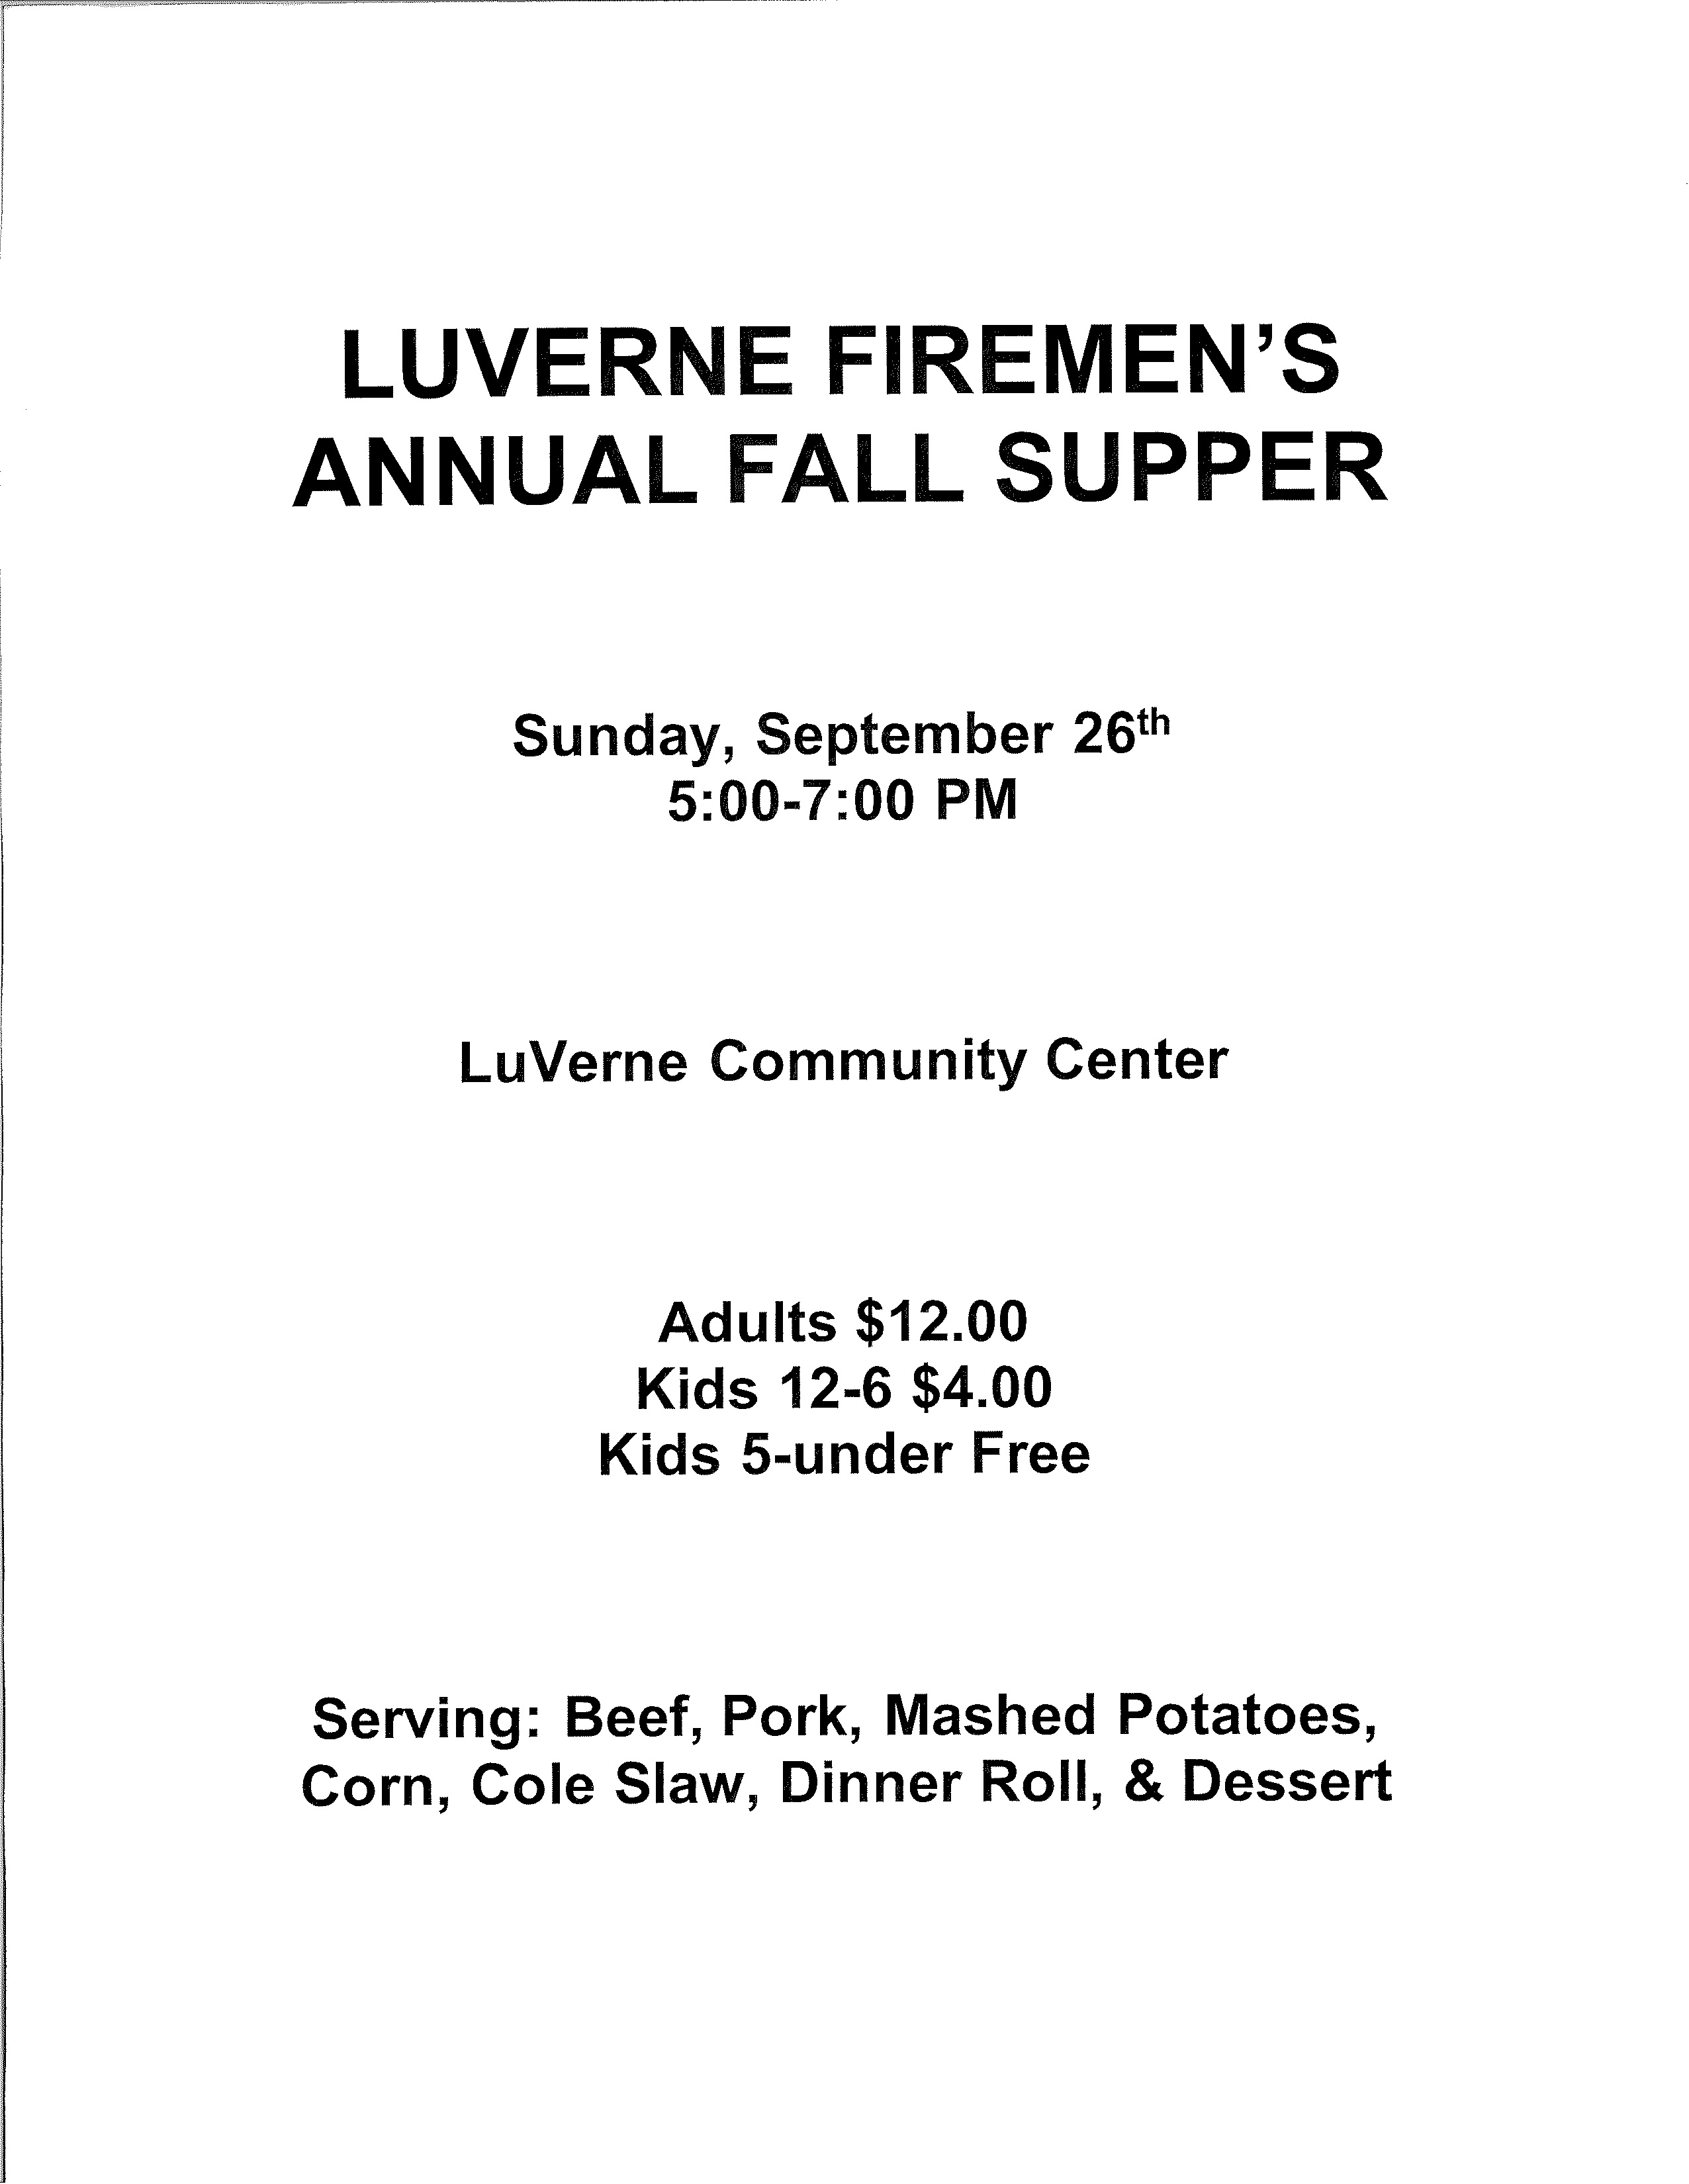 Luverne Firemen's Fall Supper